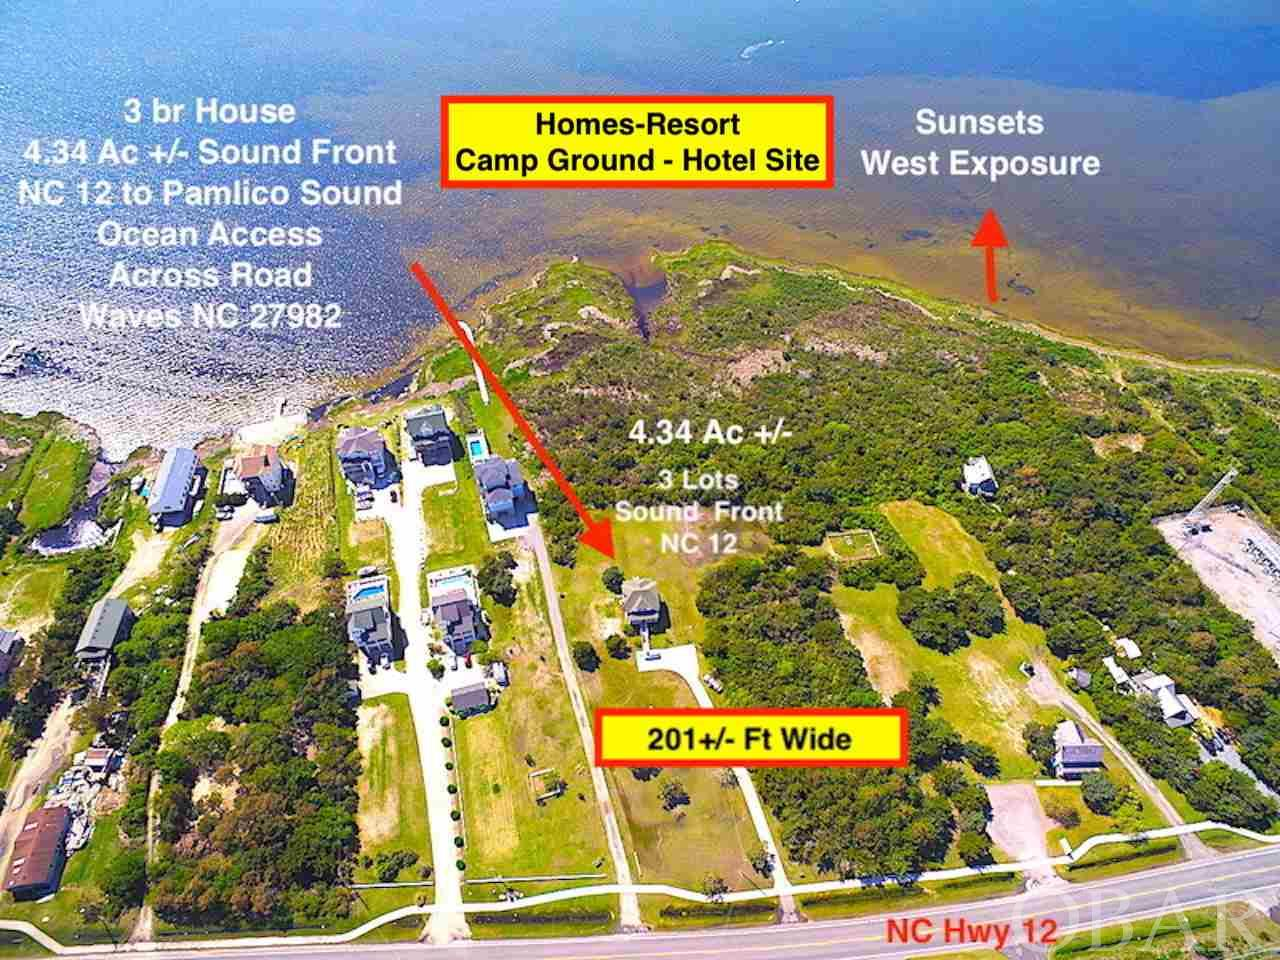 25478 NC Highway 12, Waves, NC 27982, ,Lots/land,For sale,NC Highway 12,100312